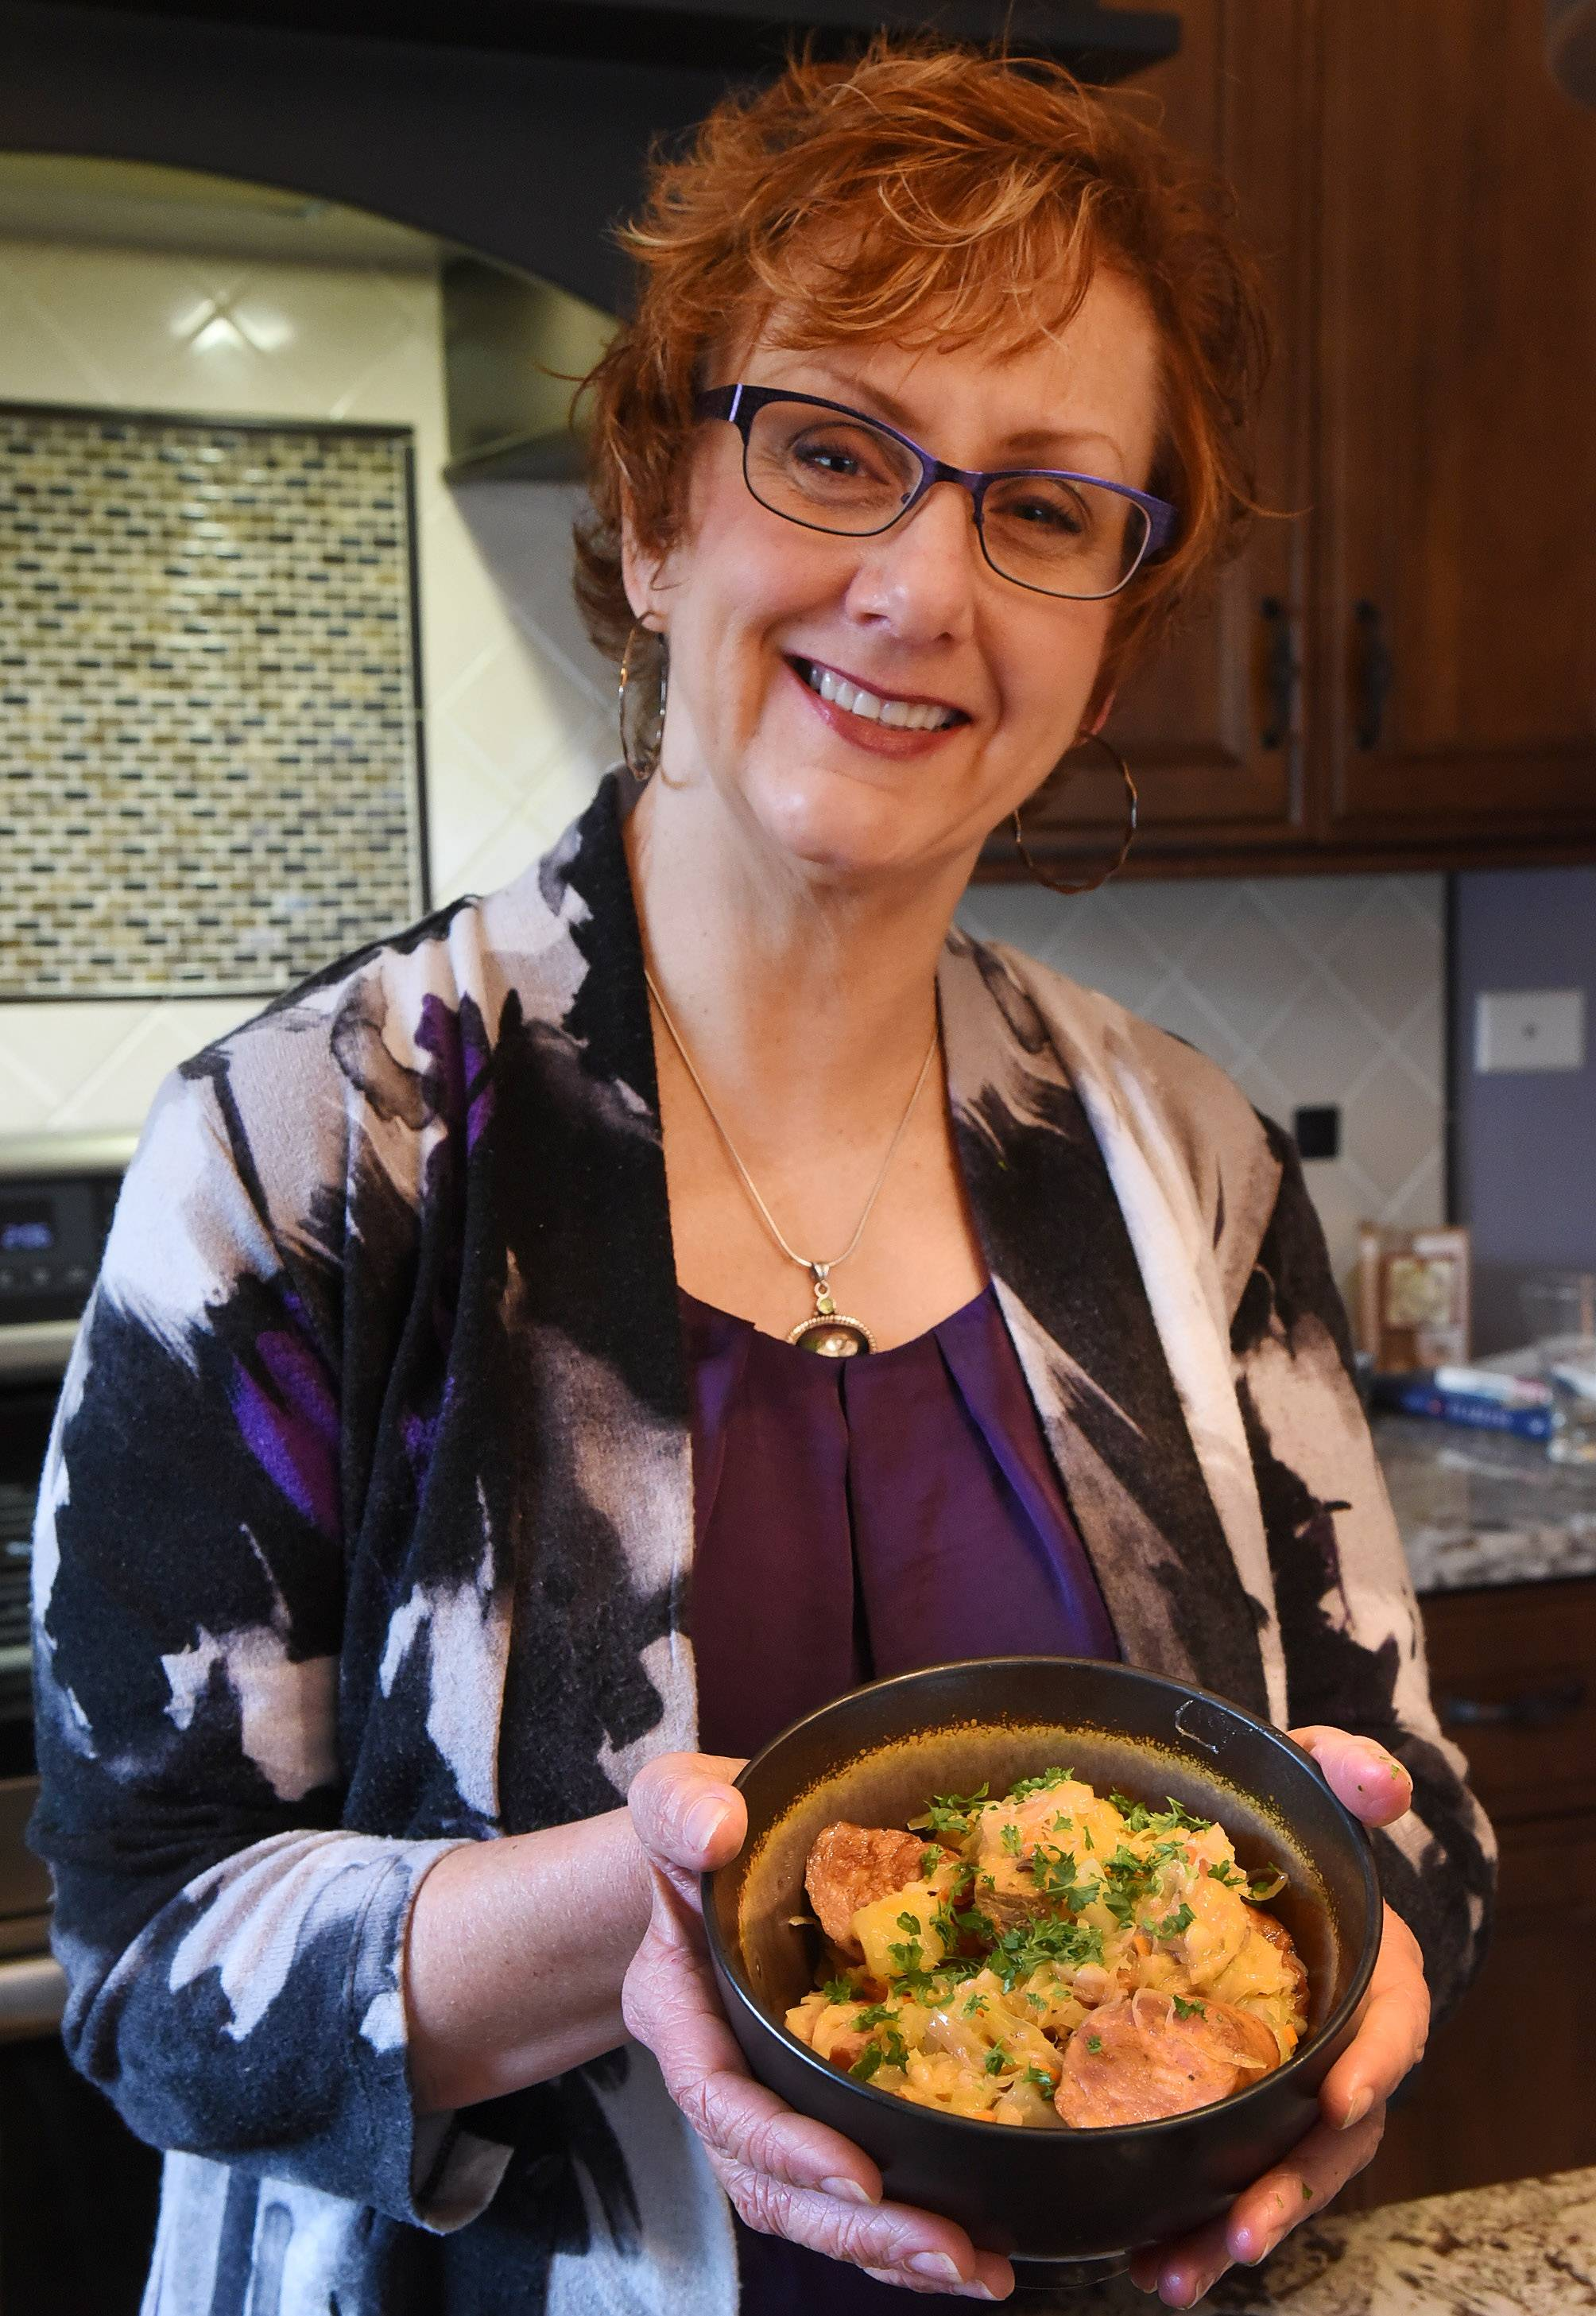 Theresa Salgado puts her own spin on the Polish food she grew up eating with her flavorful Stovetop Porky Kraut dinner.